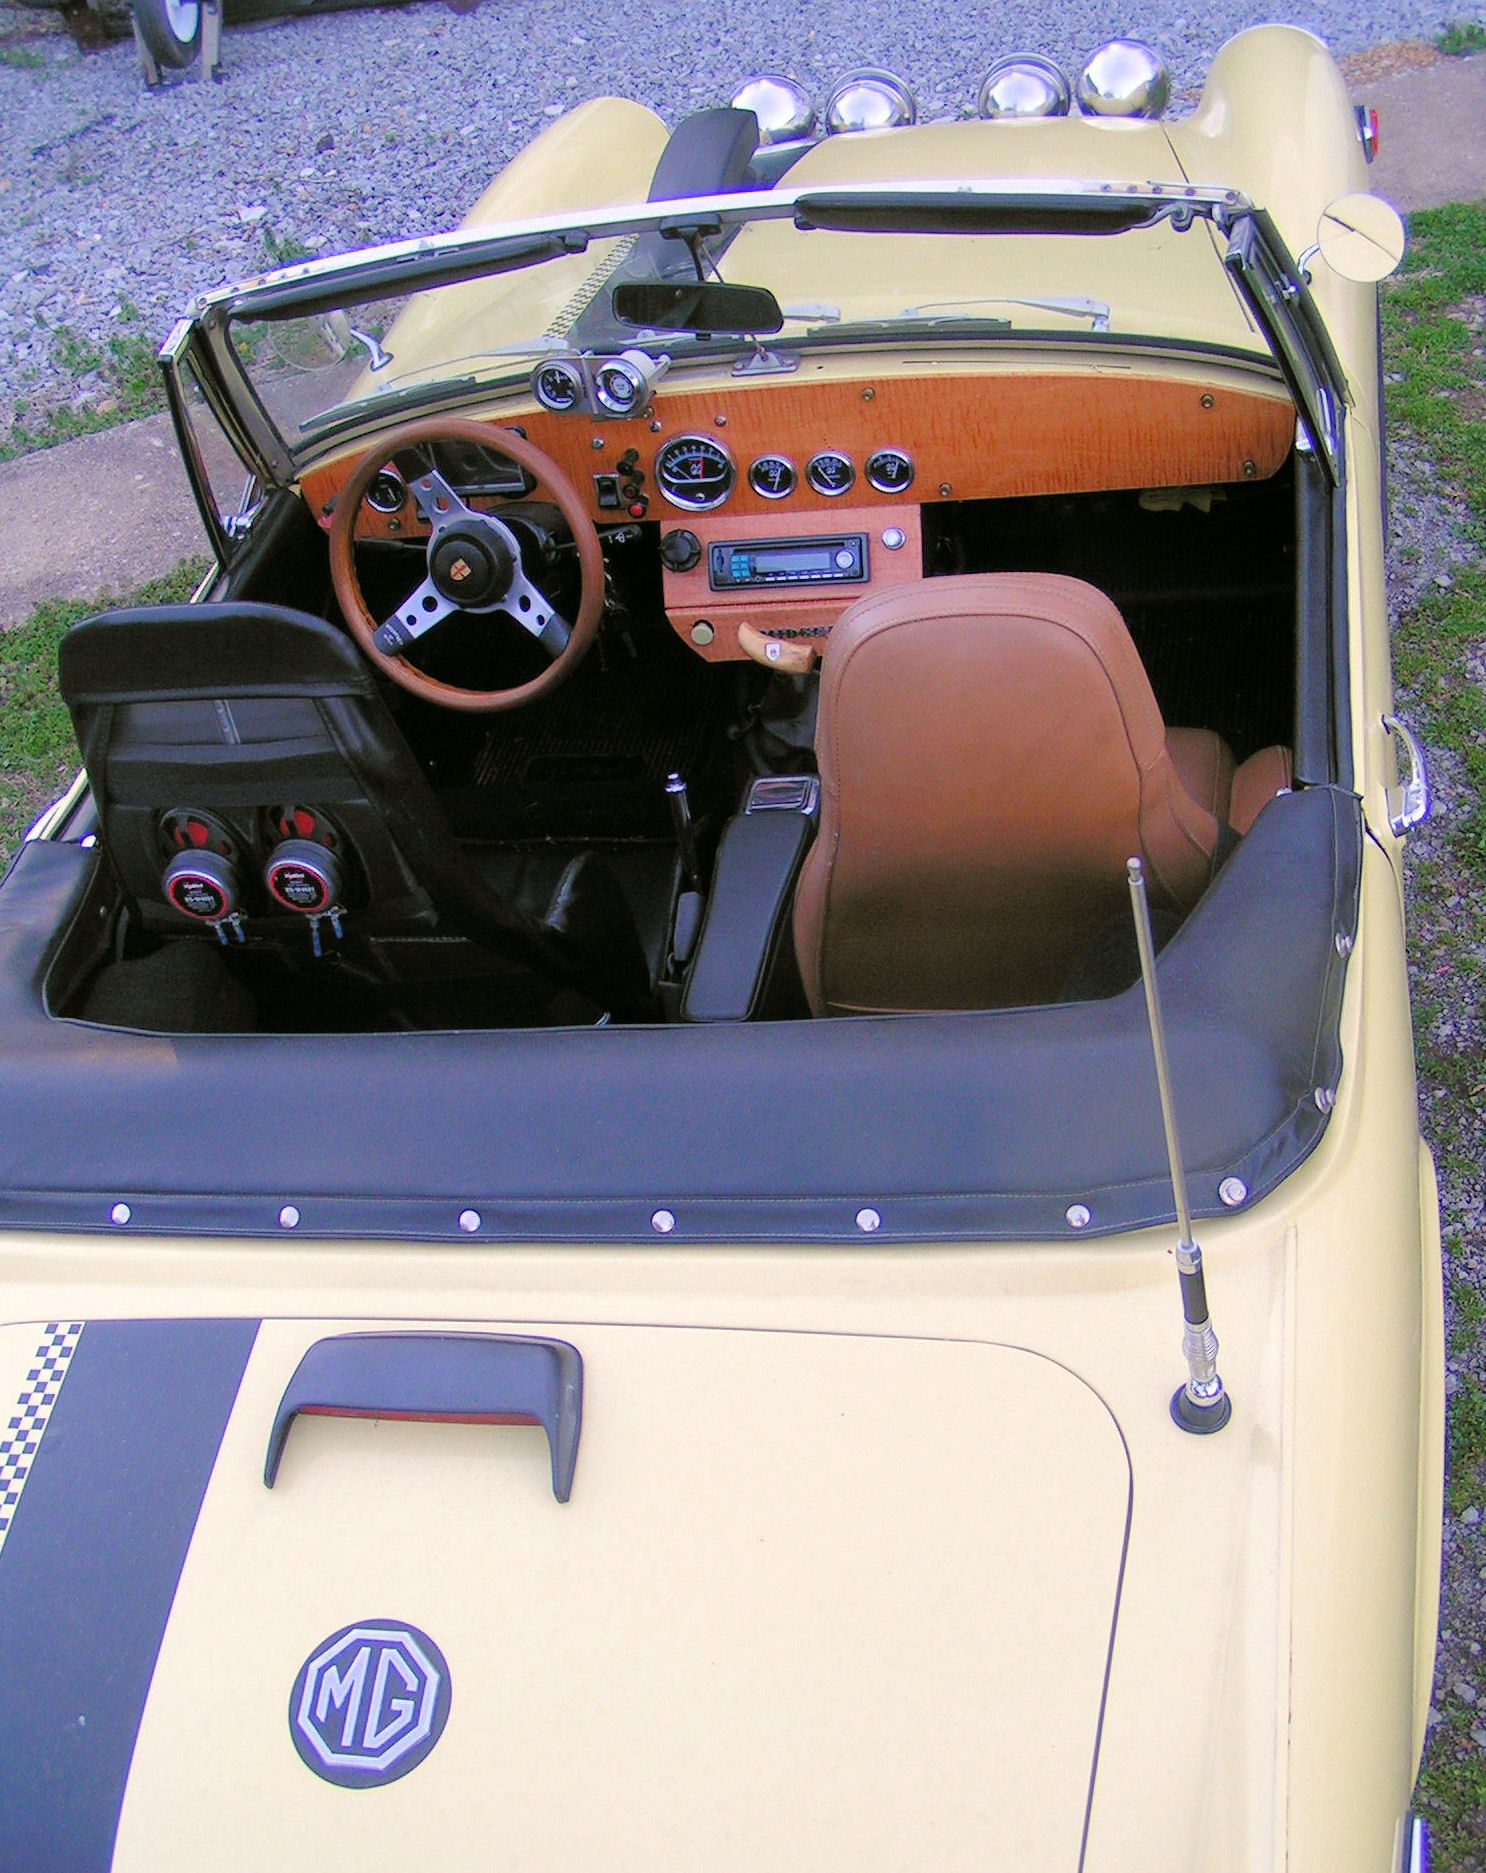 bill_powell 1969 MG Midget Specs, Photos, Modification Info at CarDomain